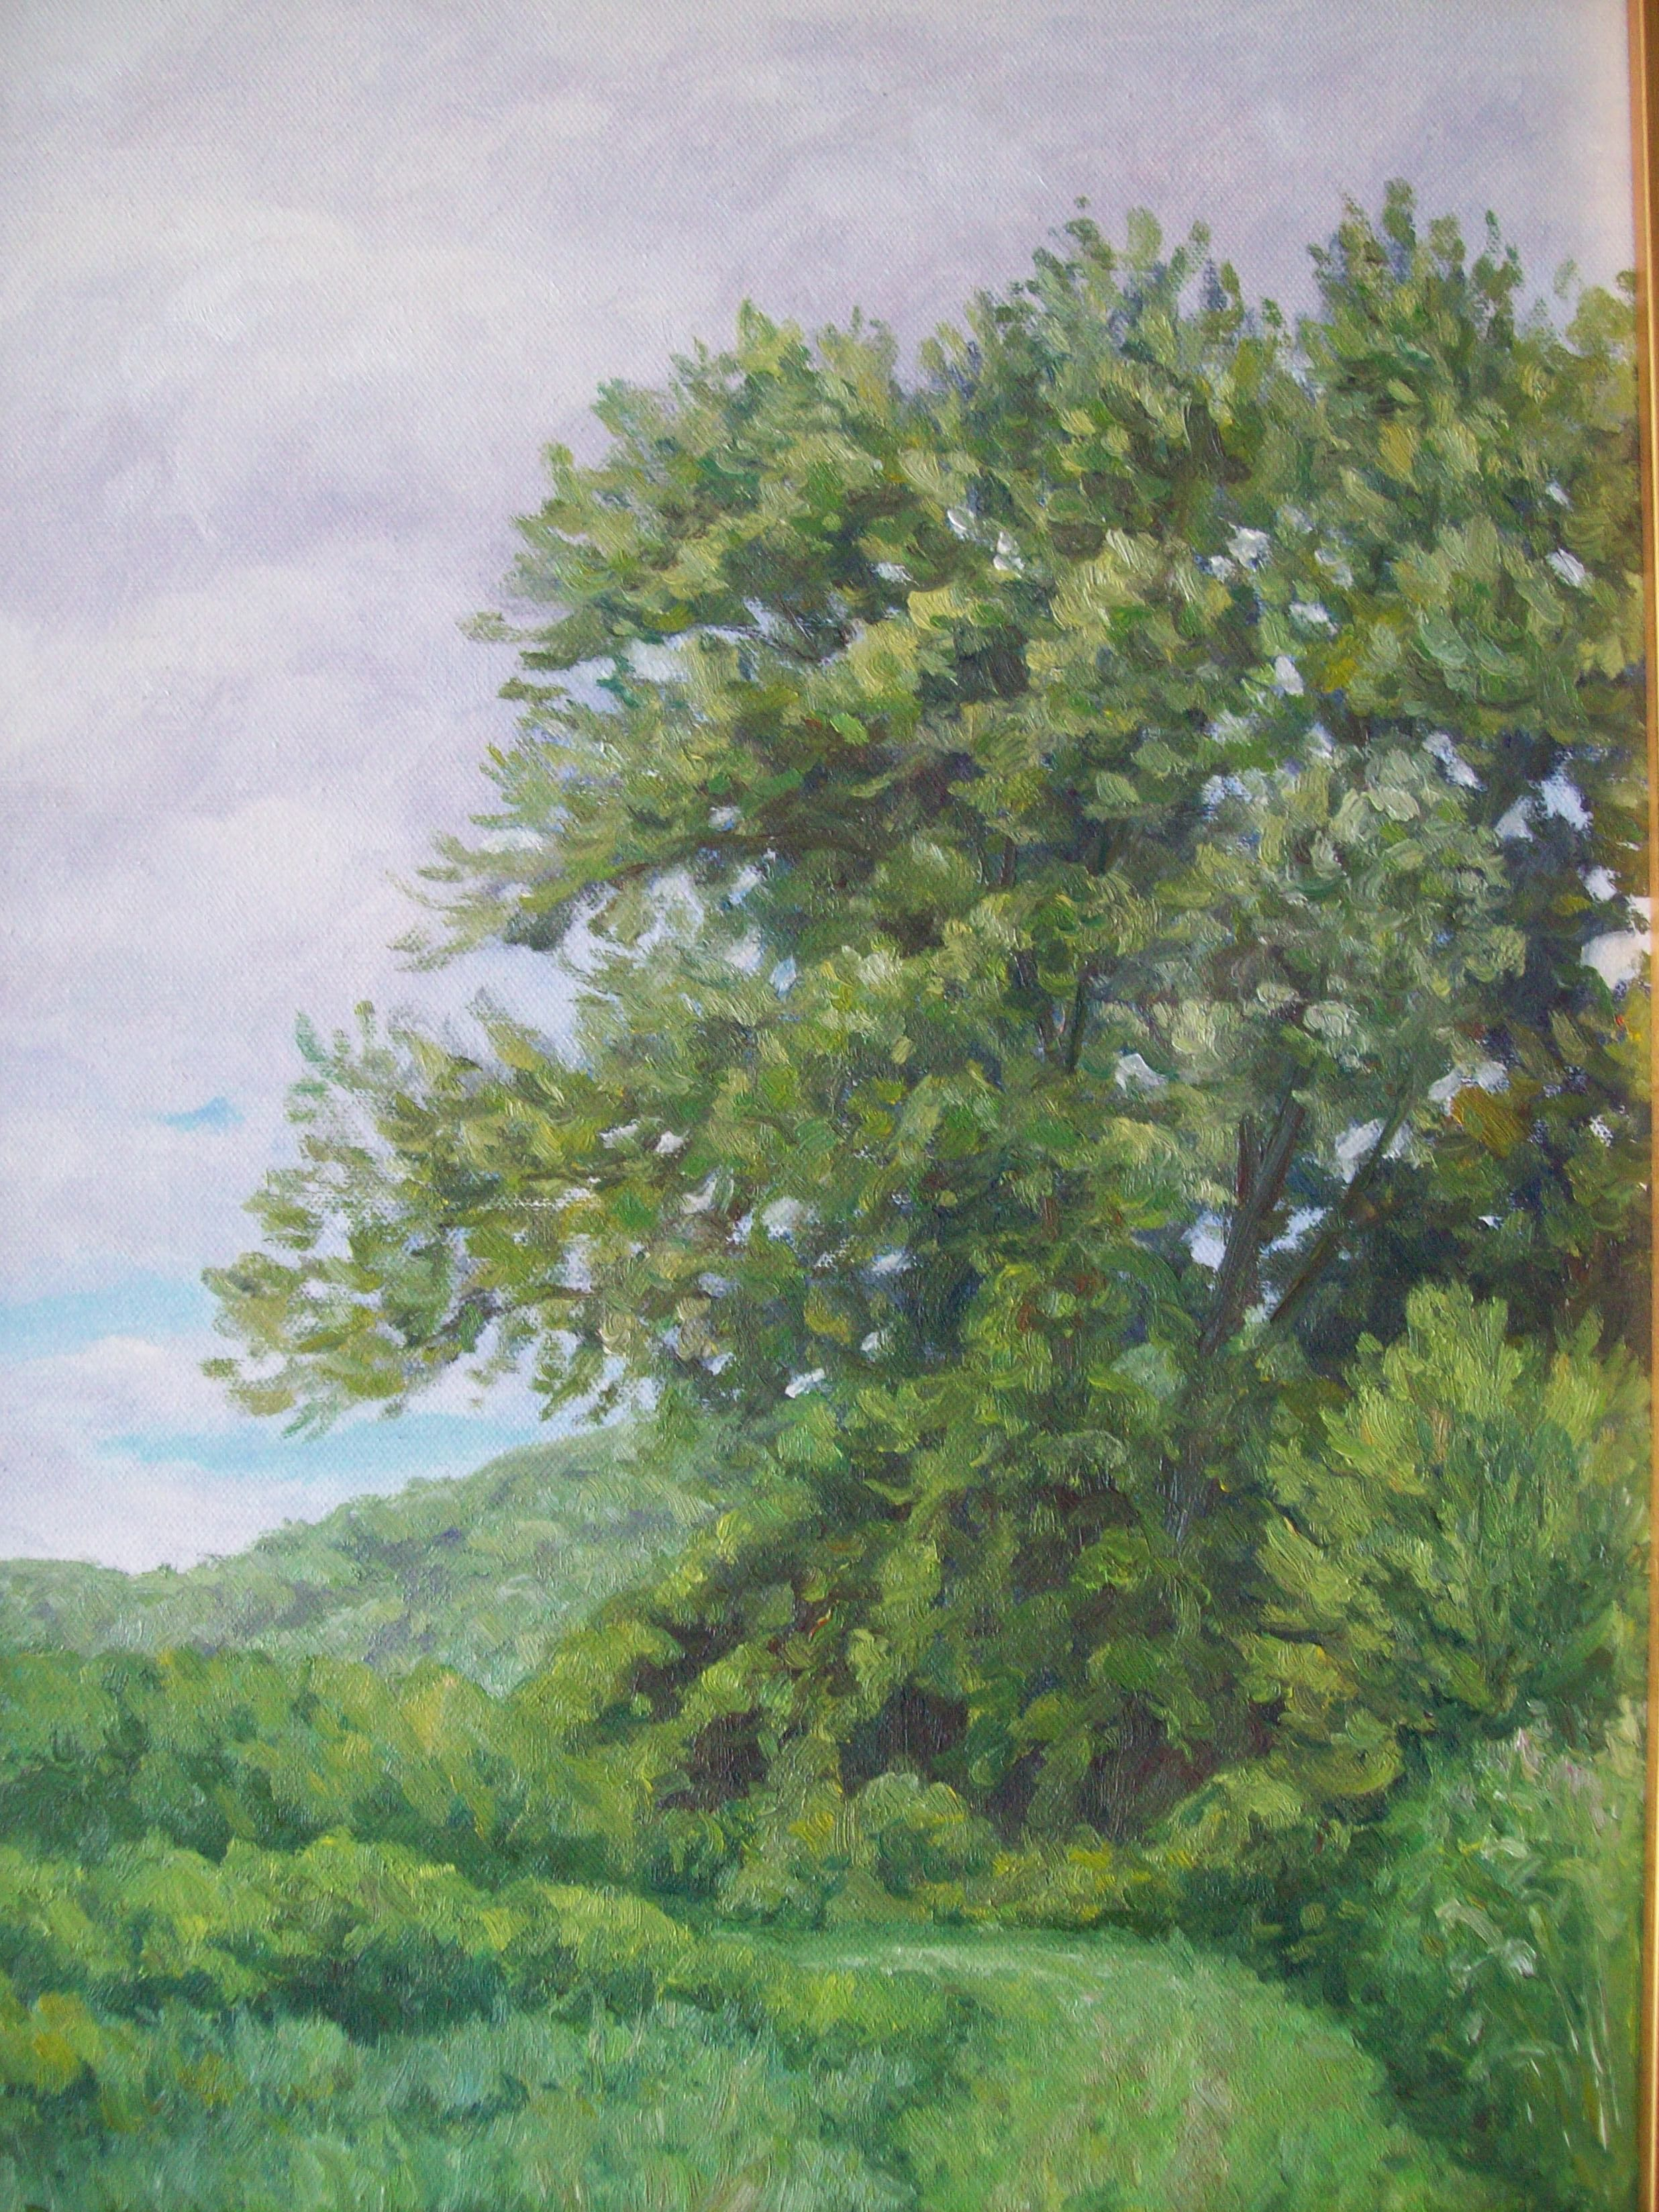 A painting of a tree in a meadow